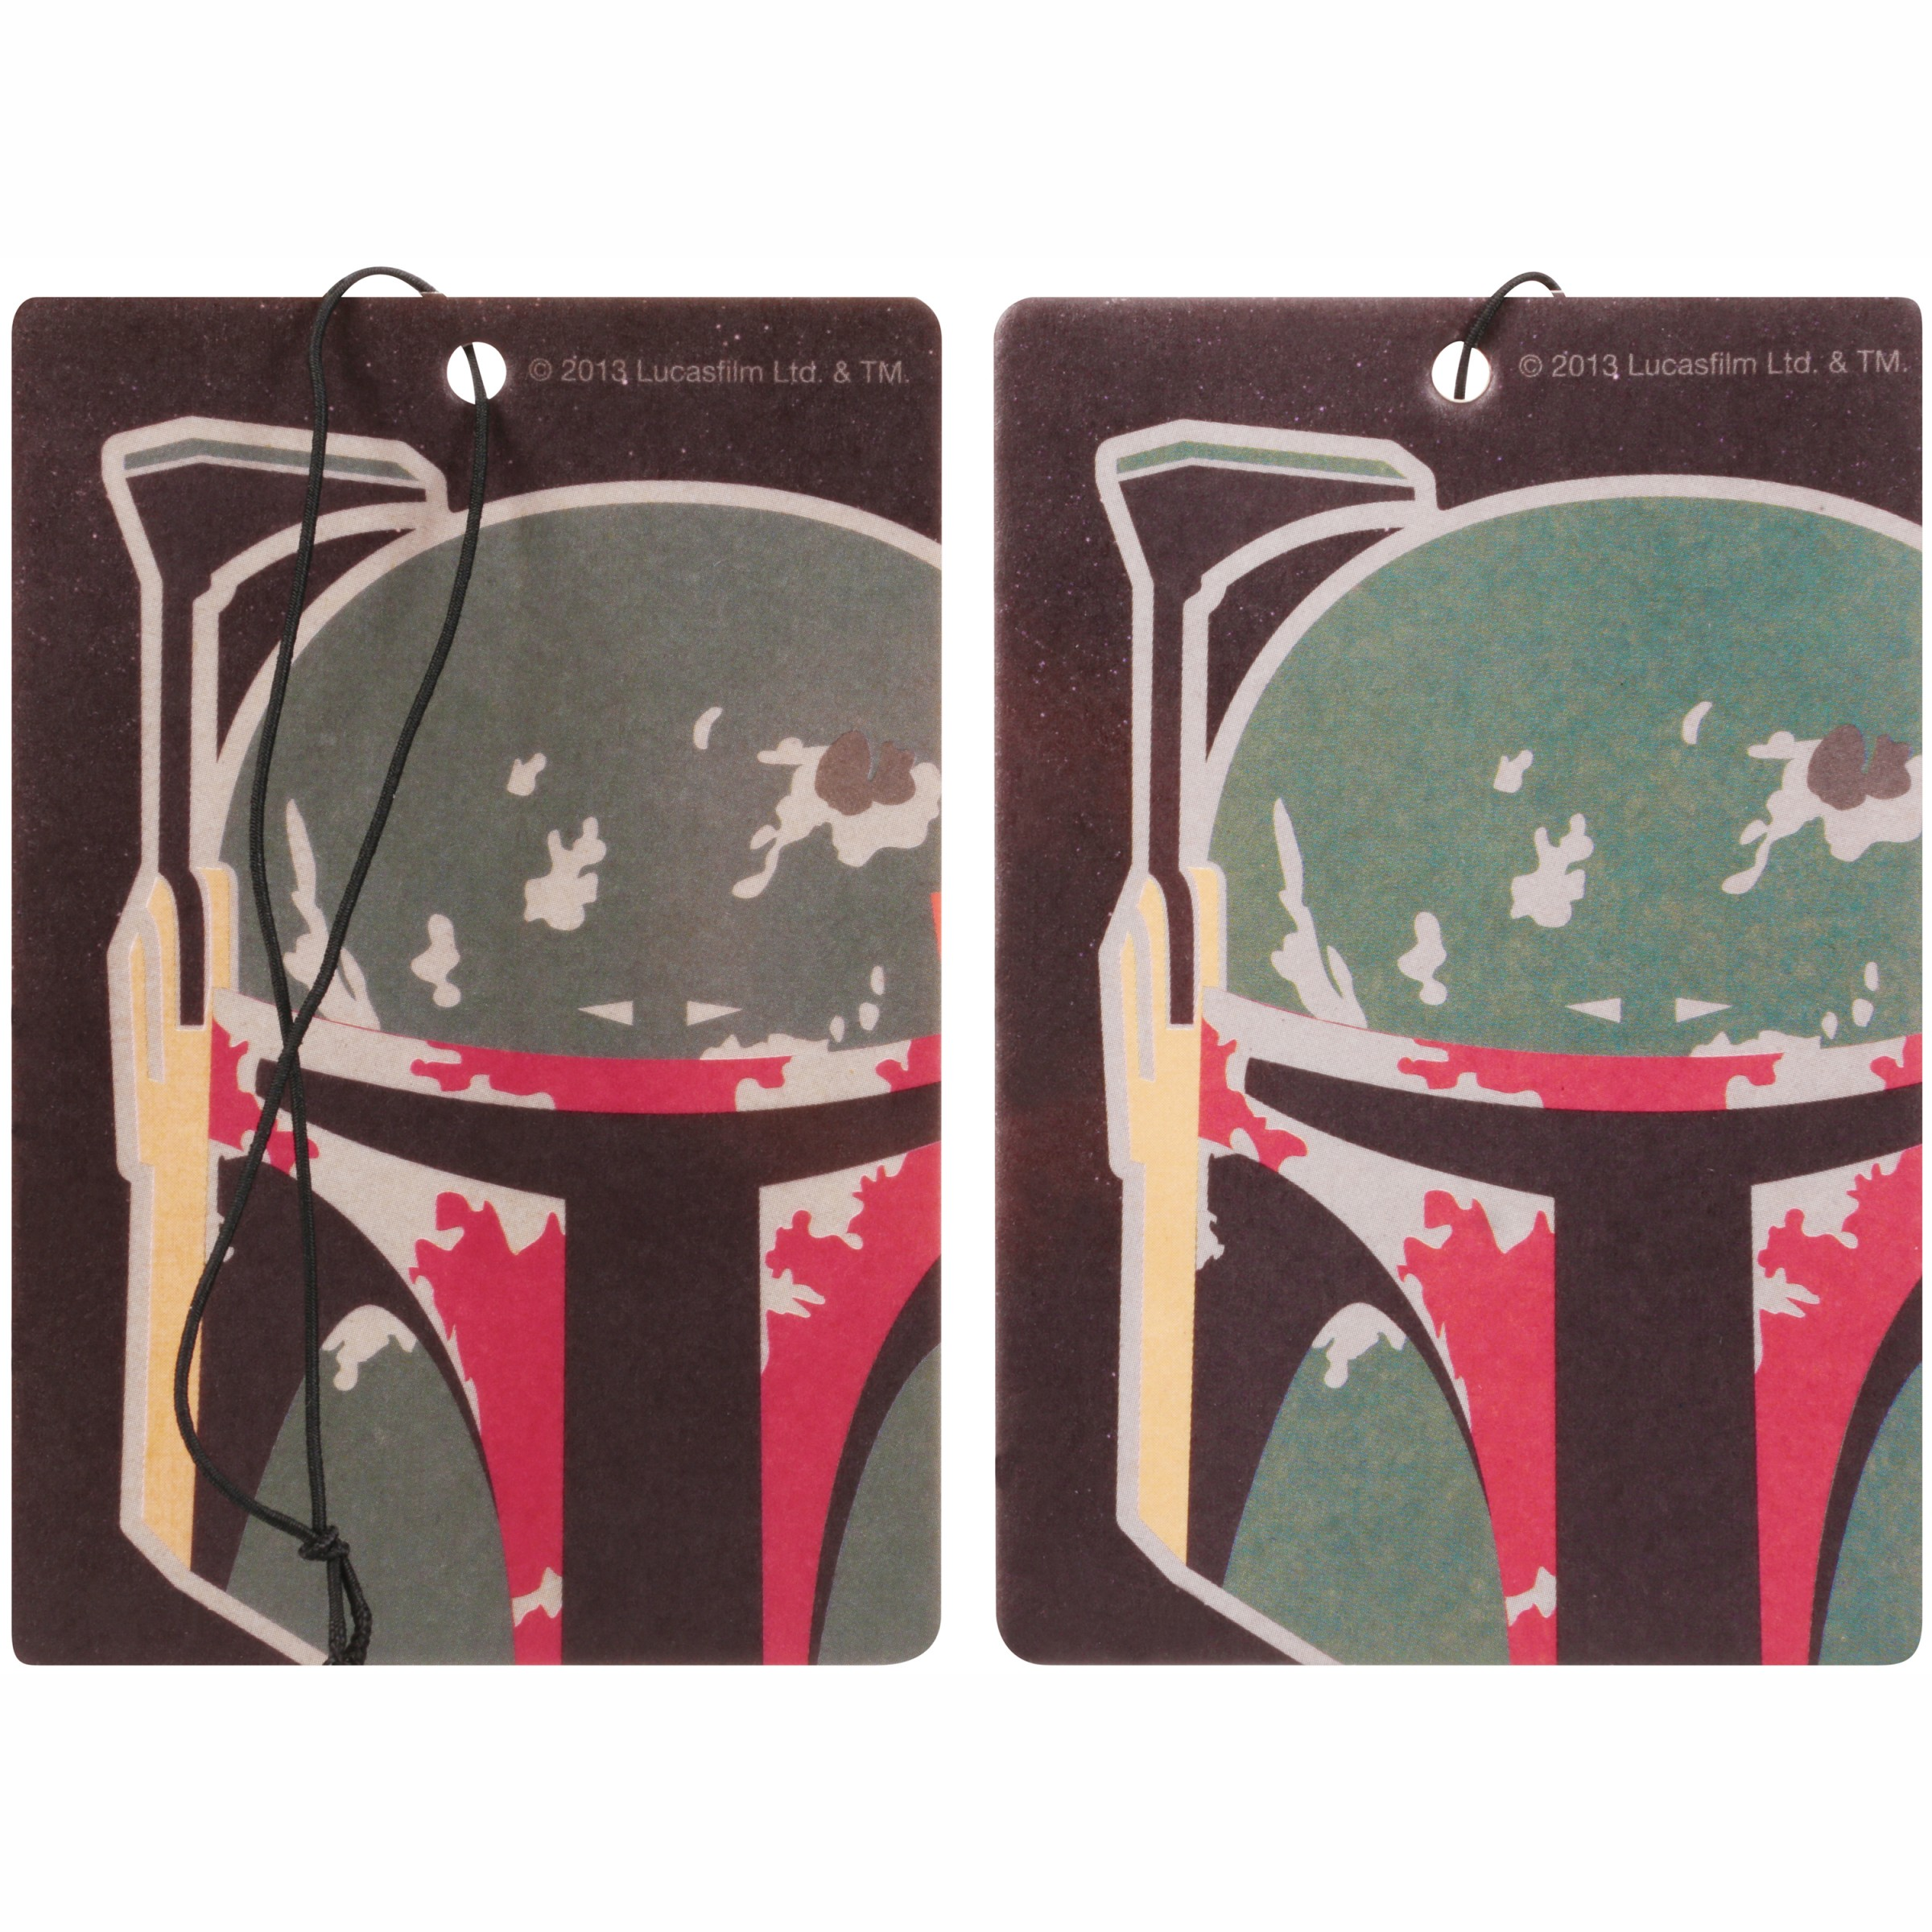 Star Wars™ Boba Fett Vanilla Air Freshener 2 ct Pack